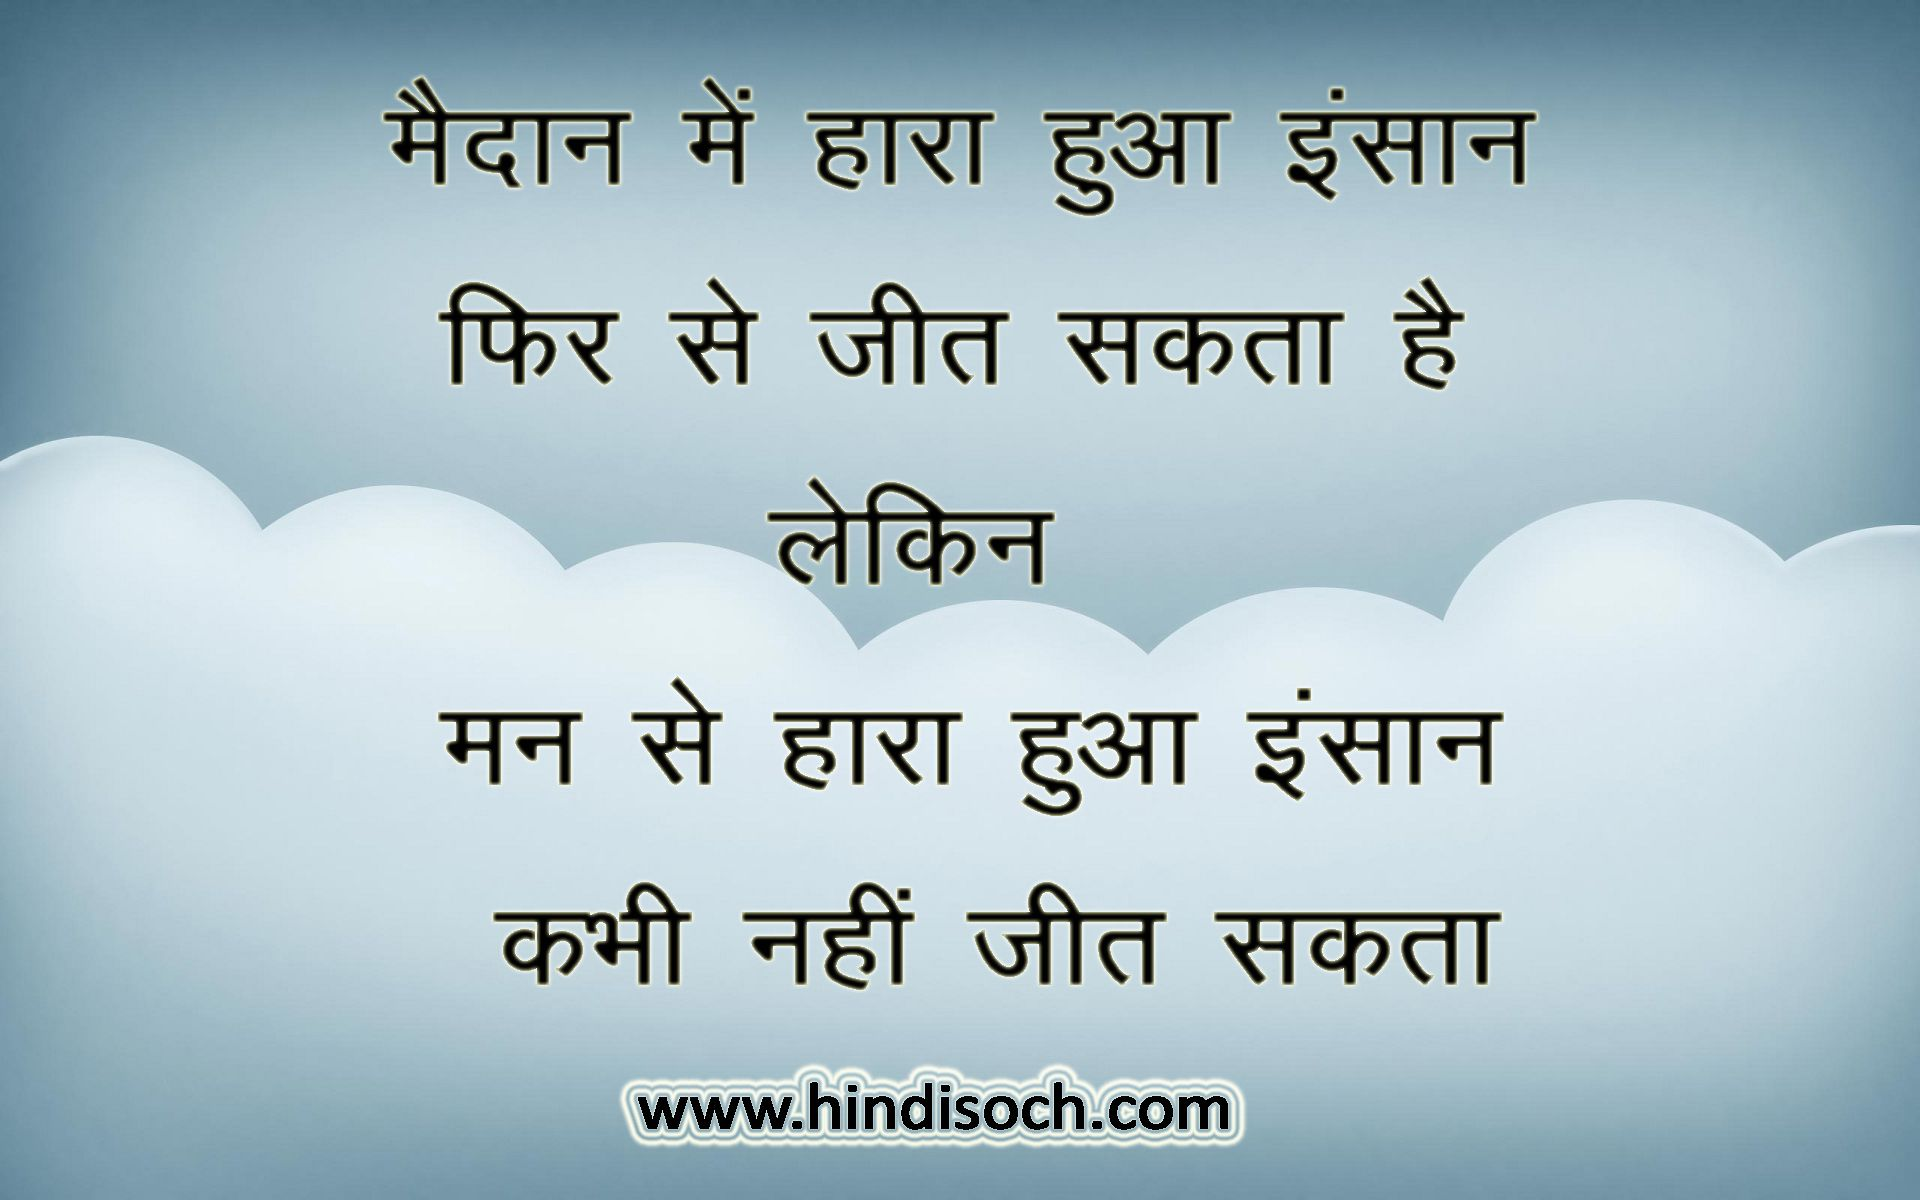 Life Inspiring Quotes 50 Life Inspirational Motivational Quotes In Hindi With Images